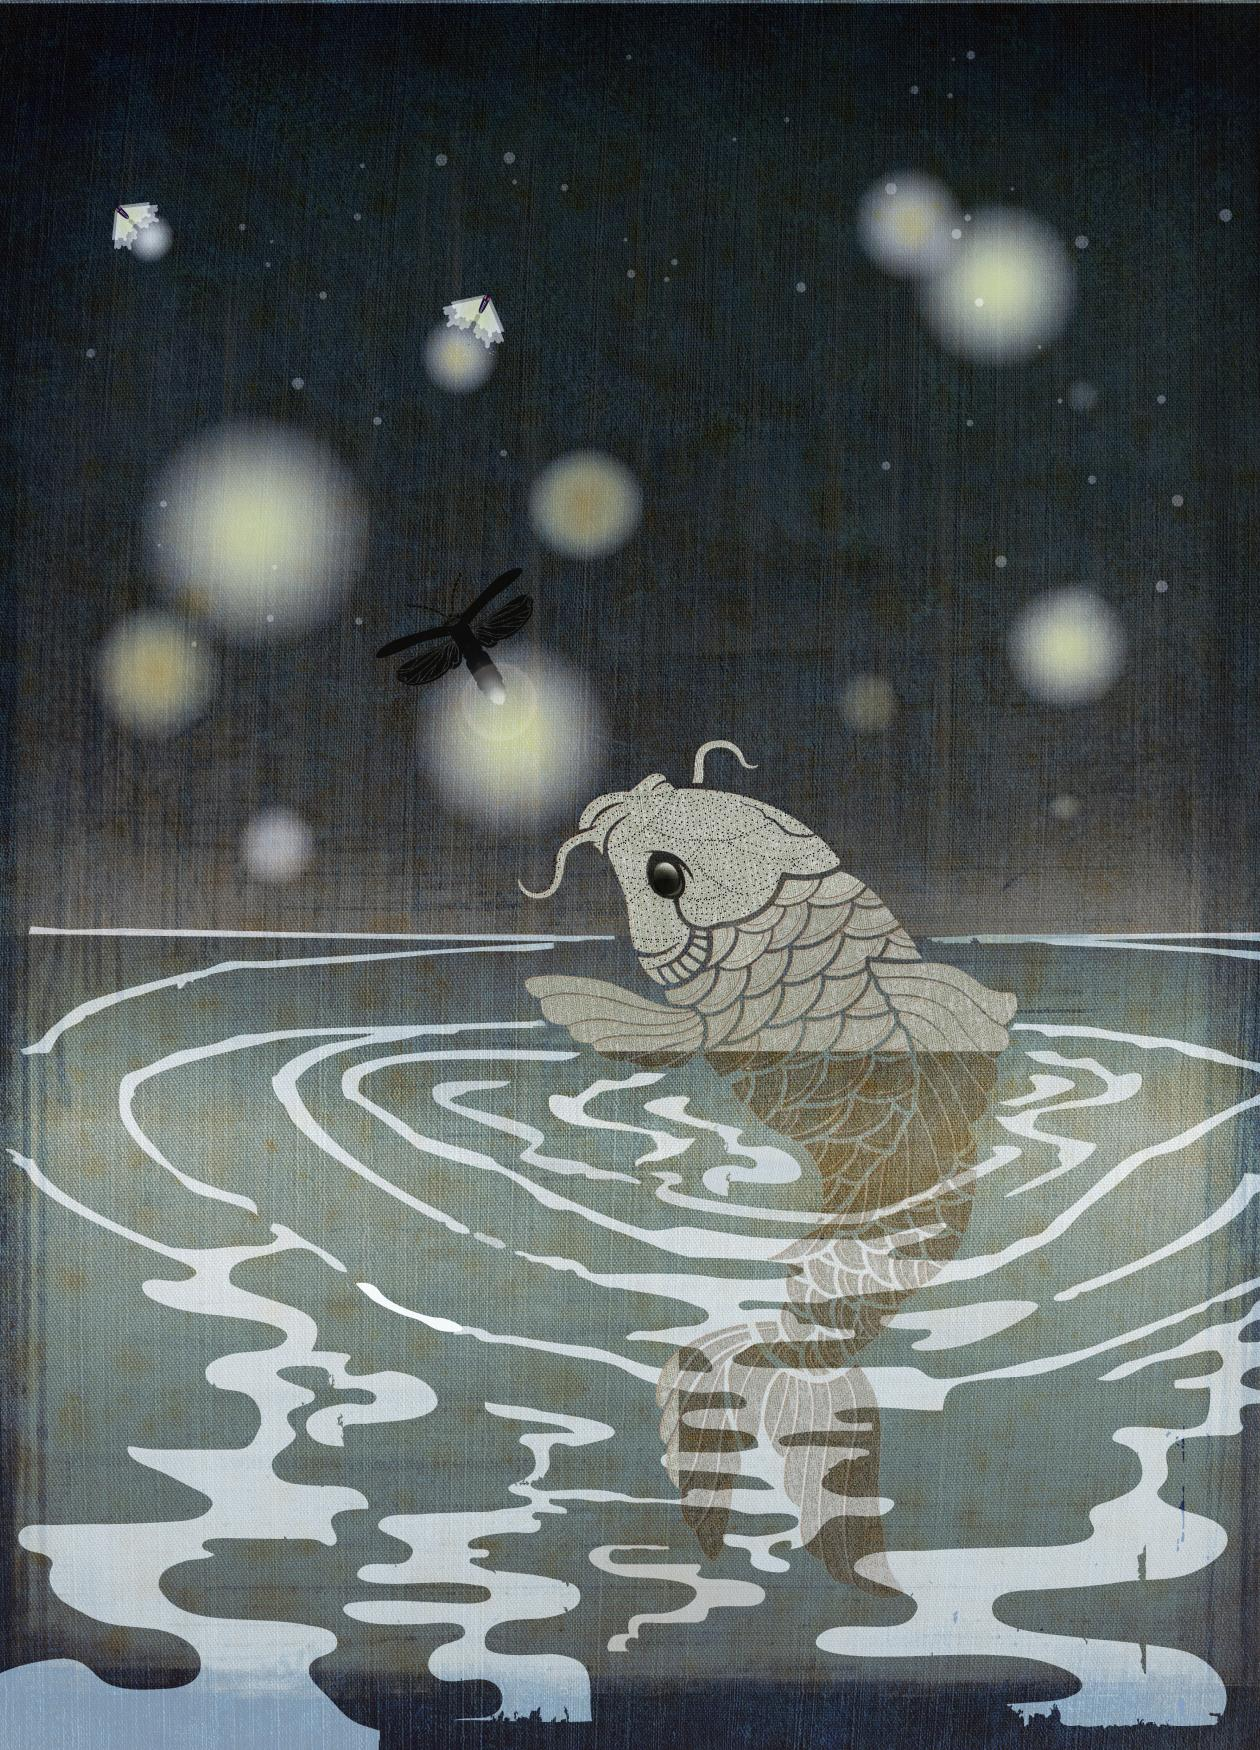 A silver koi fish coming out of water, under a night sky with orb-shaped stars